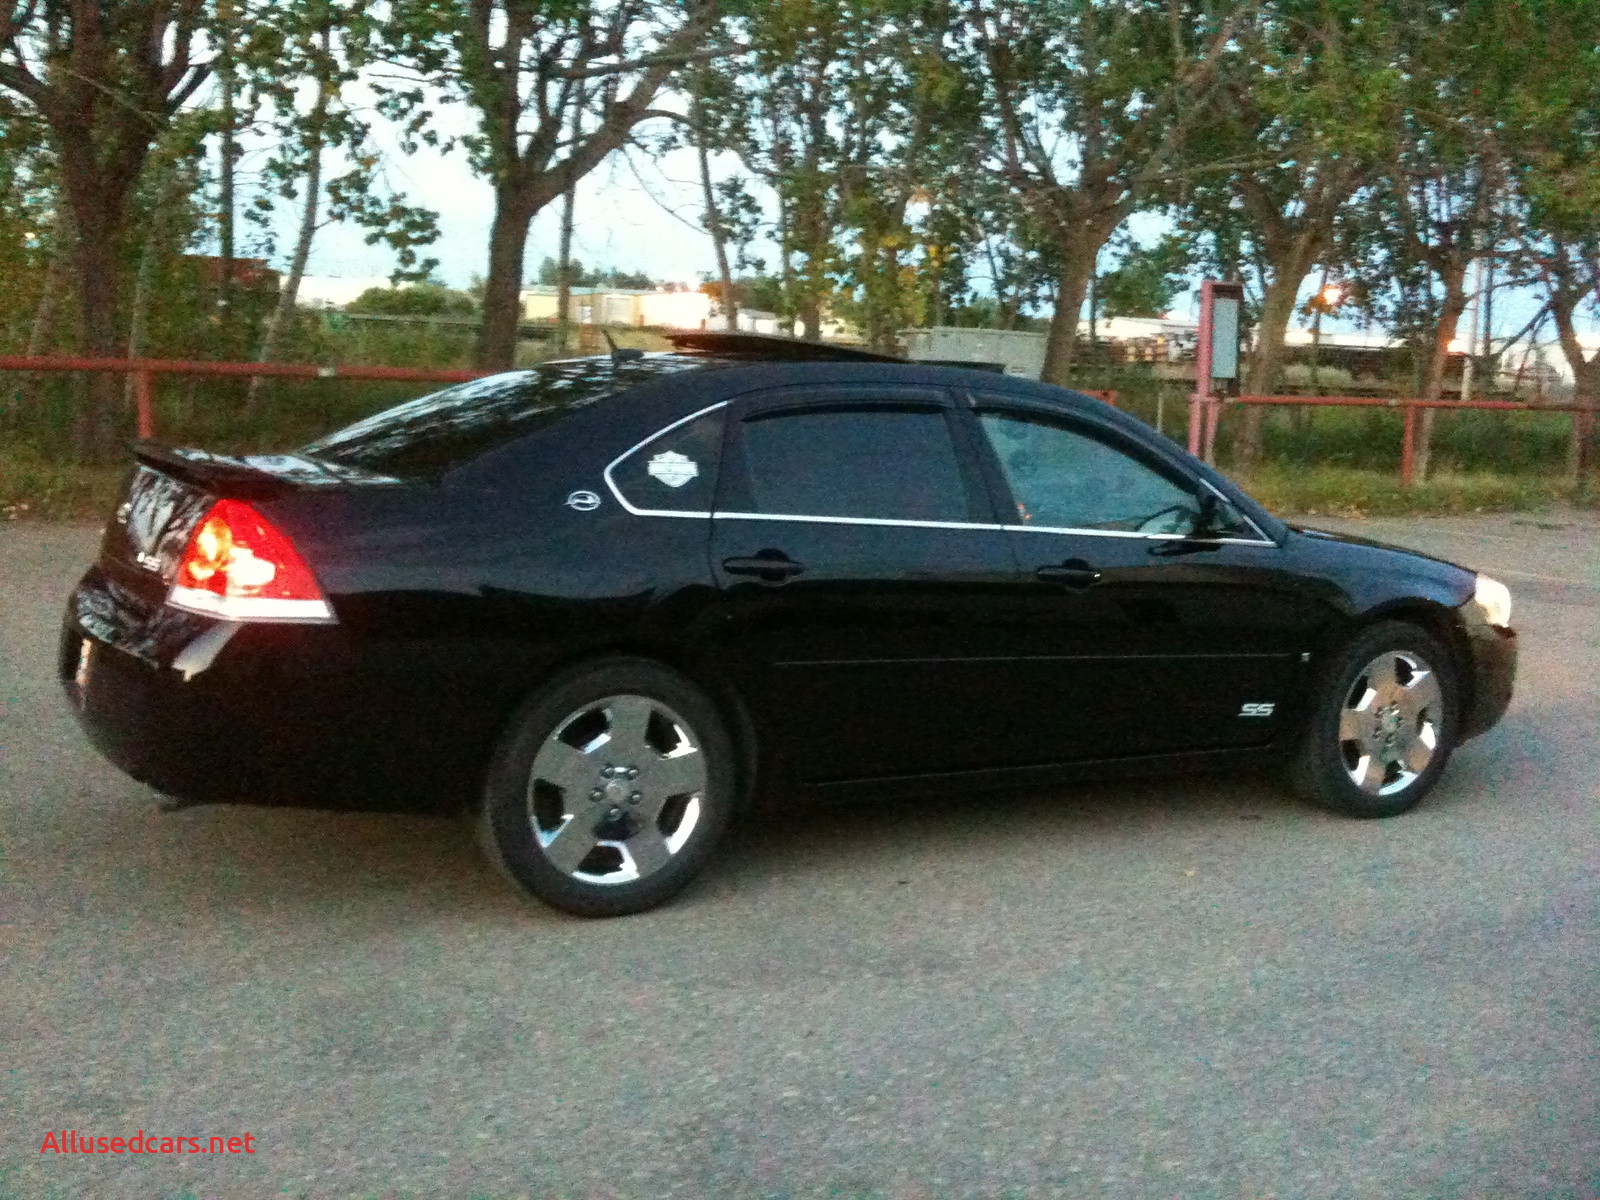 2008 Chevy Tahoe Best Of Chevrolet Impala Ss Picture 13 Reviews News Specs Car